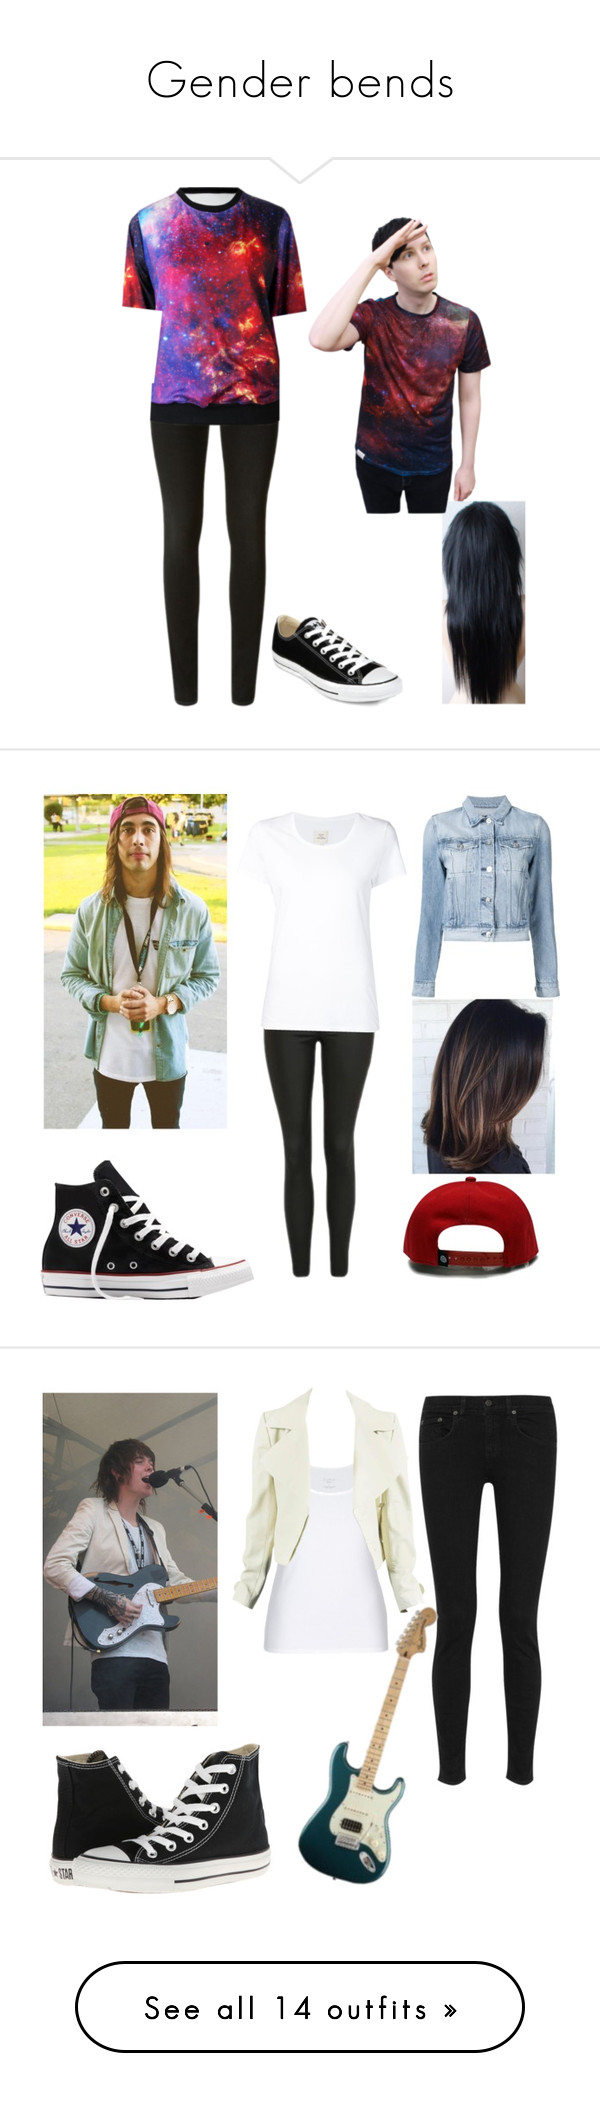 """Gender bends"" by xxghostlygracexx ❤ liked on Polyvore featuring J Brand, Converse, Topshop, Max 'n Chester, 3x1, rag & bone, BLK DNM, The Mercer N.Y., Vans and Twenty"